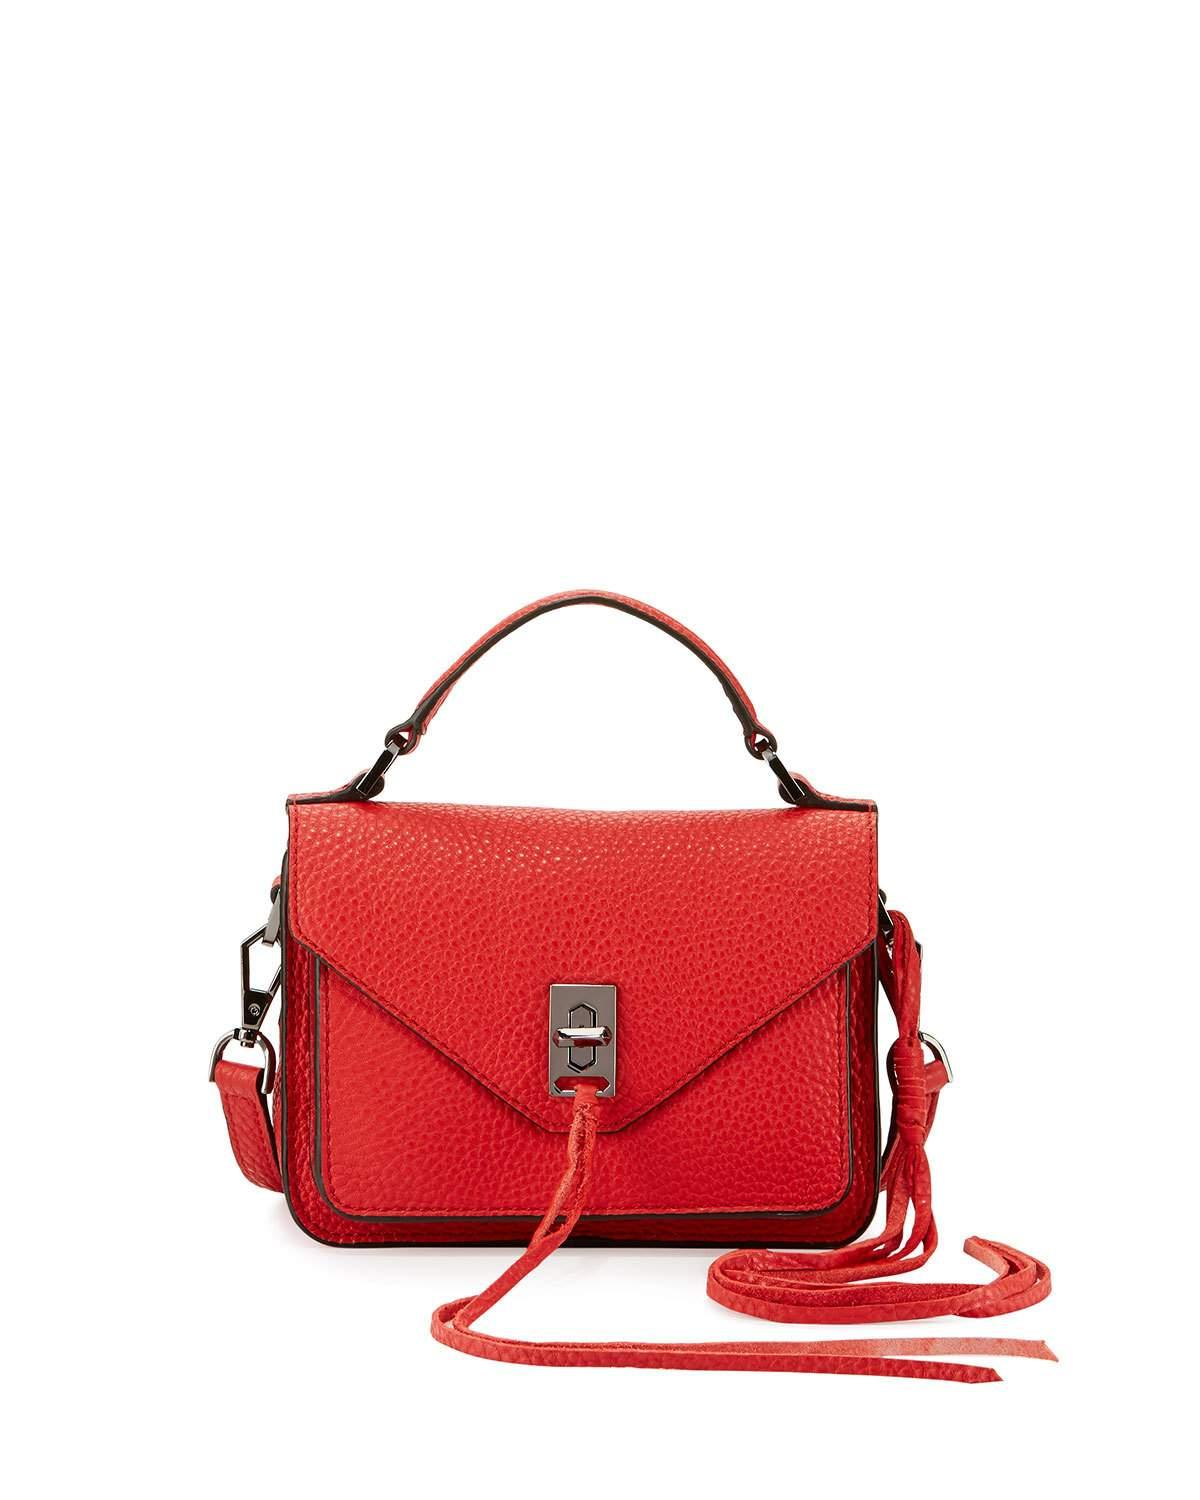 Find great deals on eBay for rebecca minkoff bag. Shop with confidence.